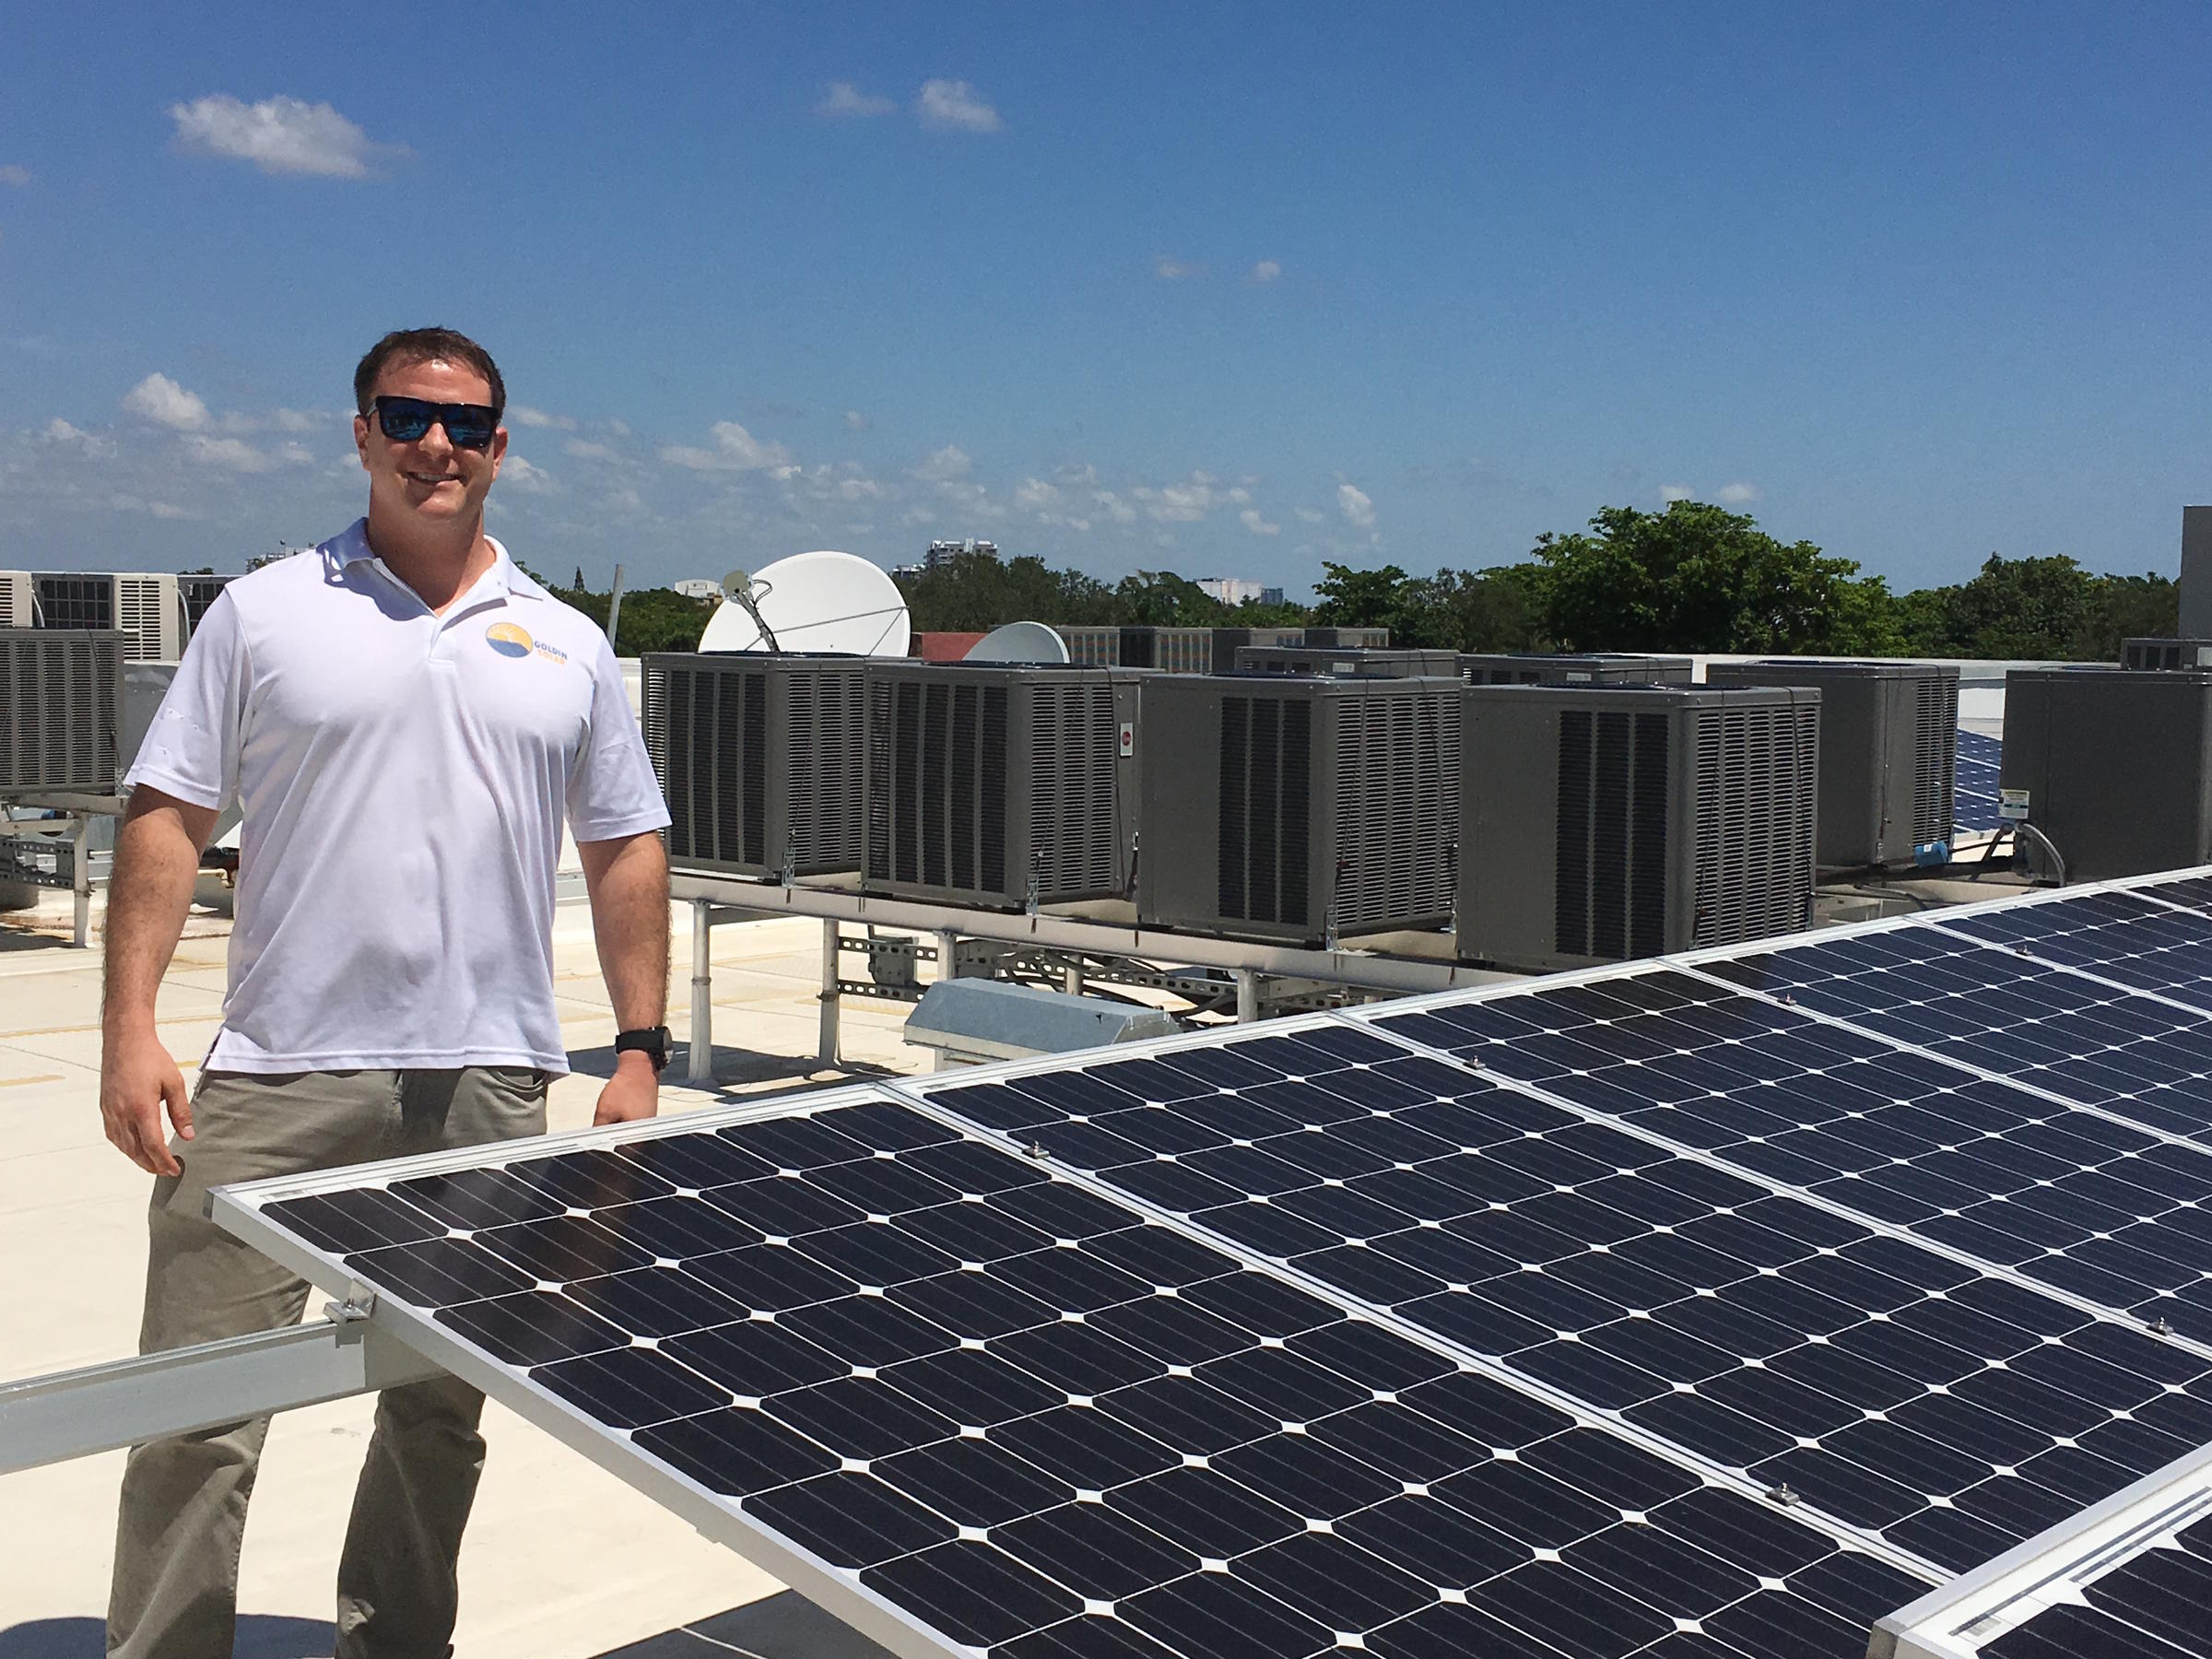 Daren Goldin Stands With One Of His Companyu0027s Solar Installations On A  Coconut Grove Hotel Roof.